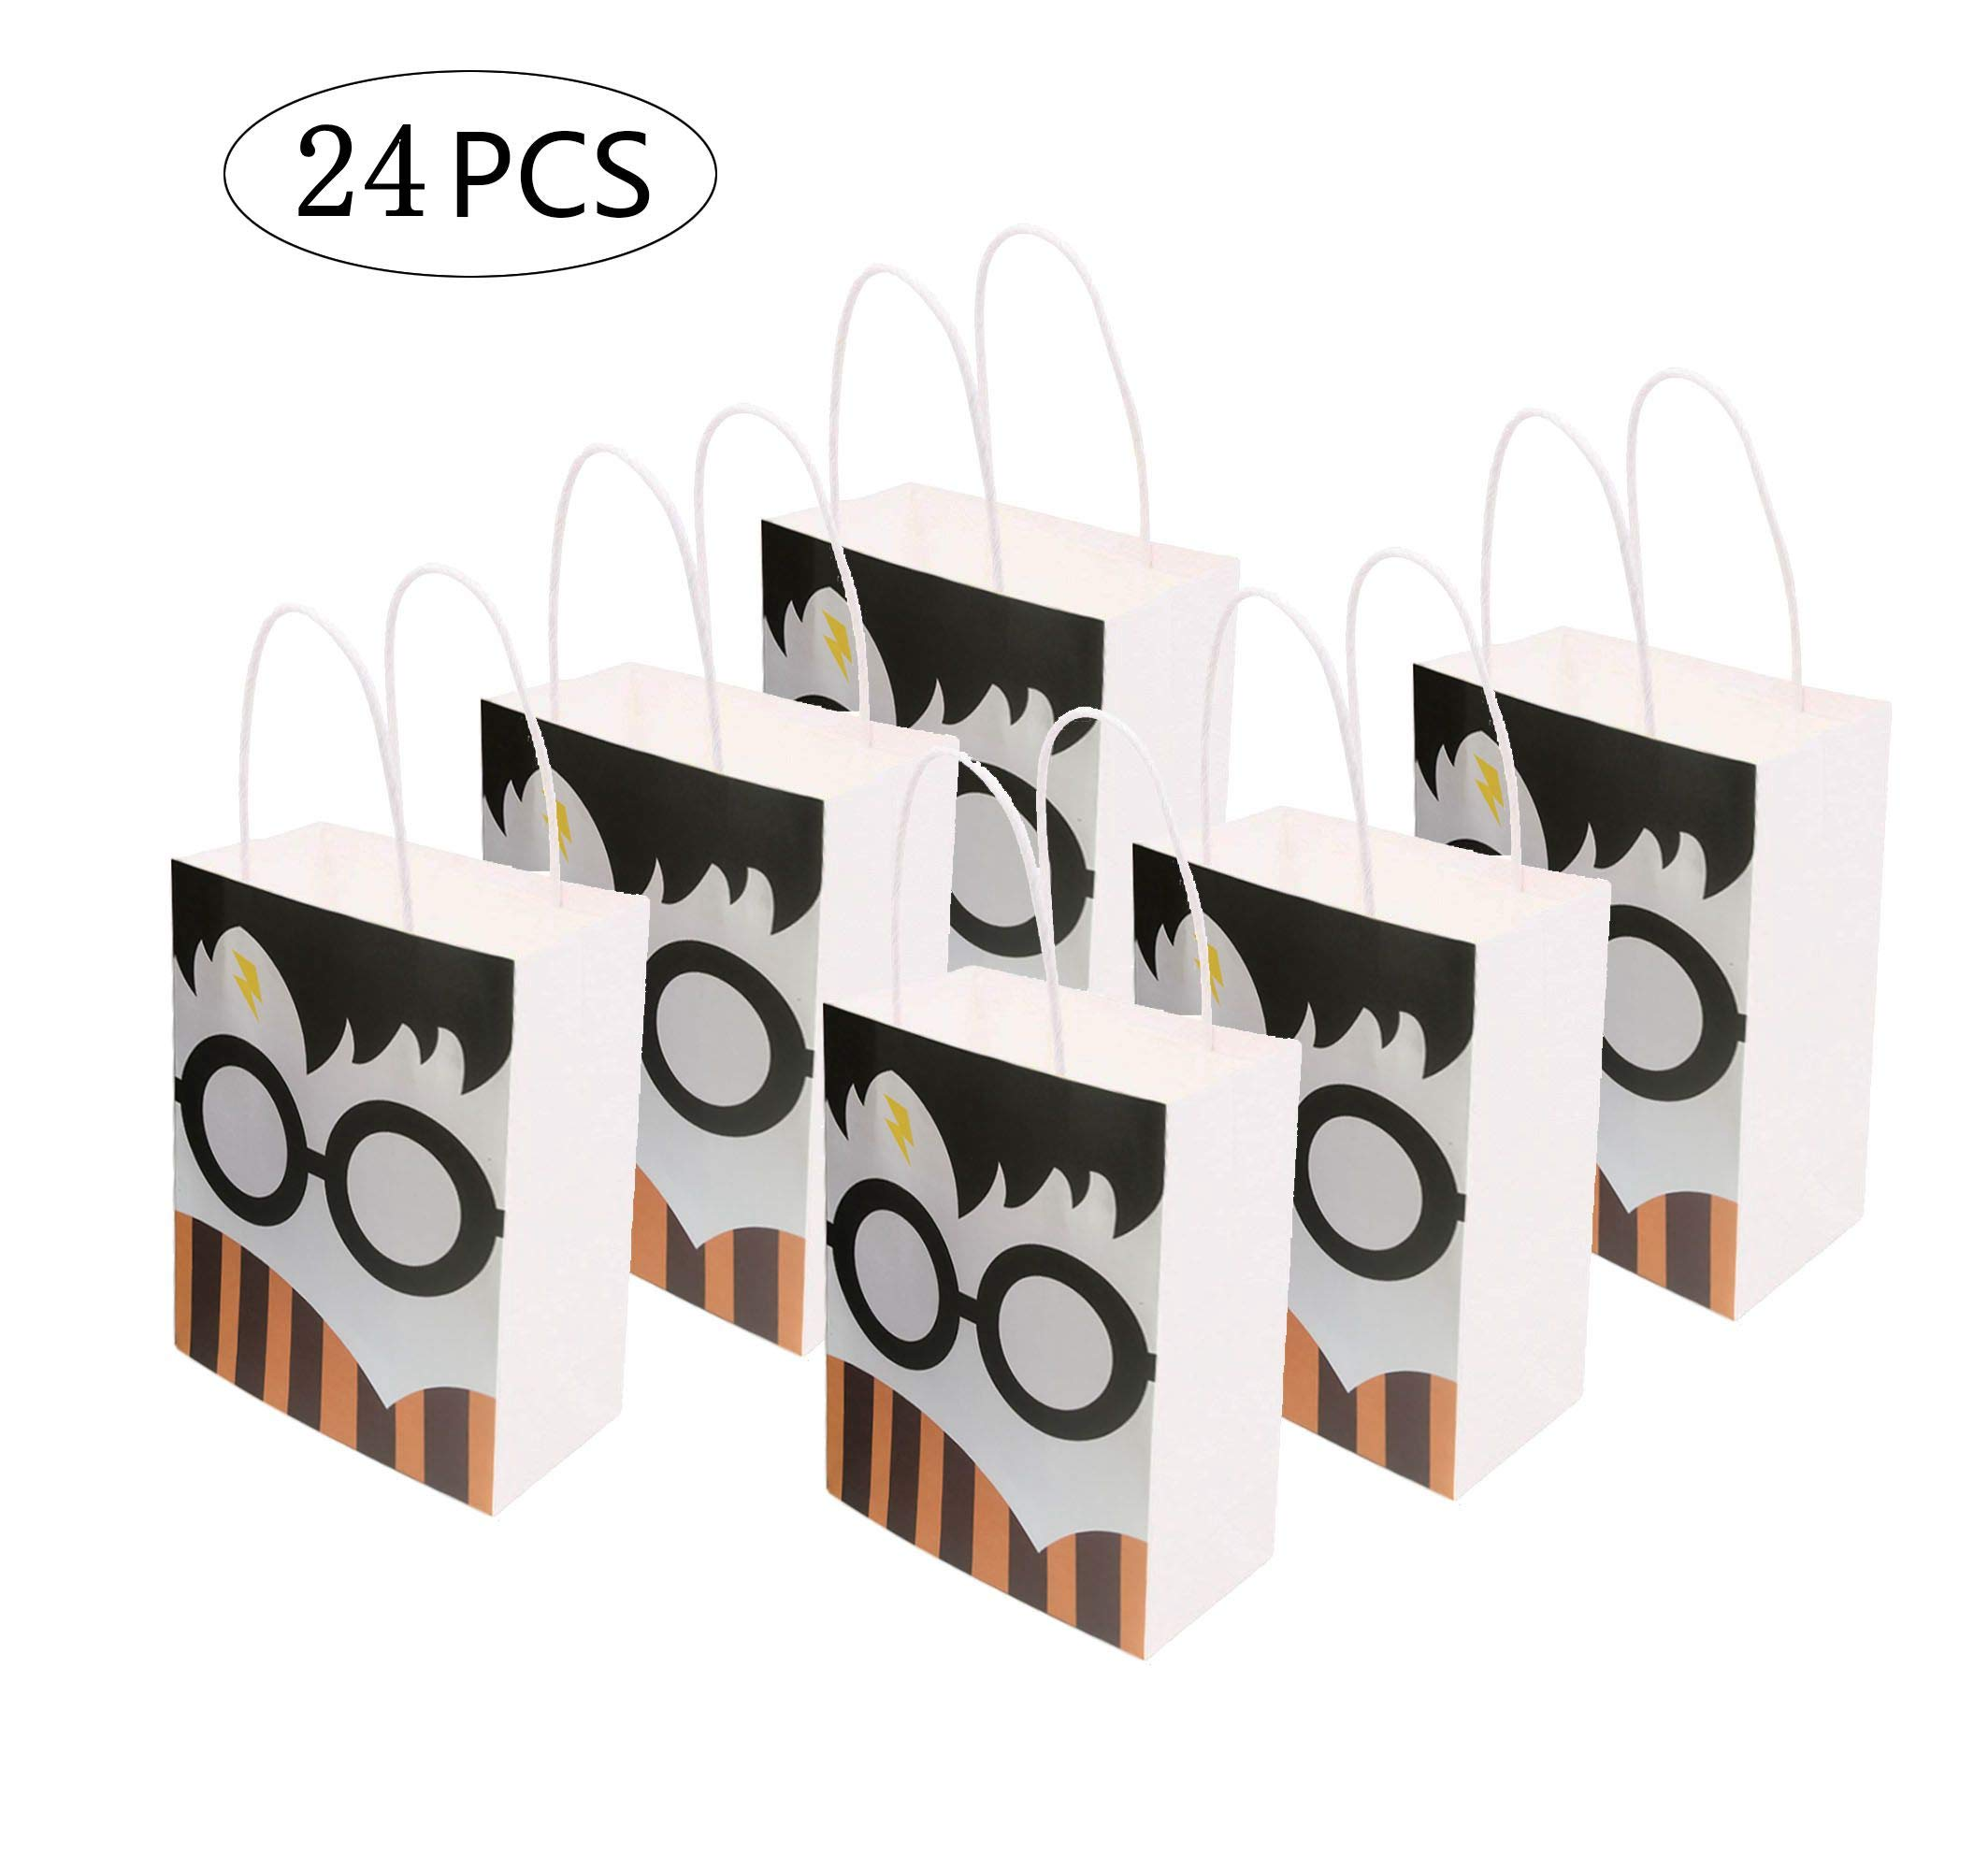 24PC Magical Wizard School Gift Bag for Harry Potter Birthday Party Decorations Supplies by MC TTL (Image #1)